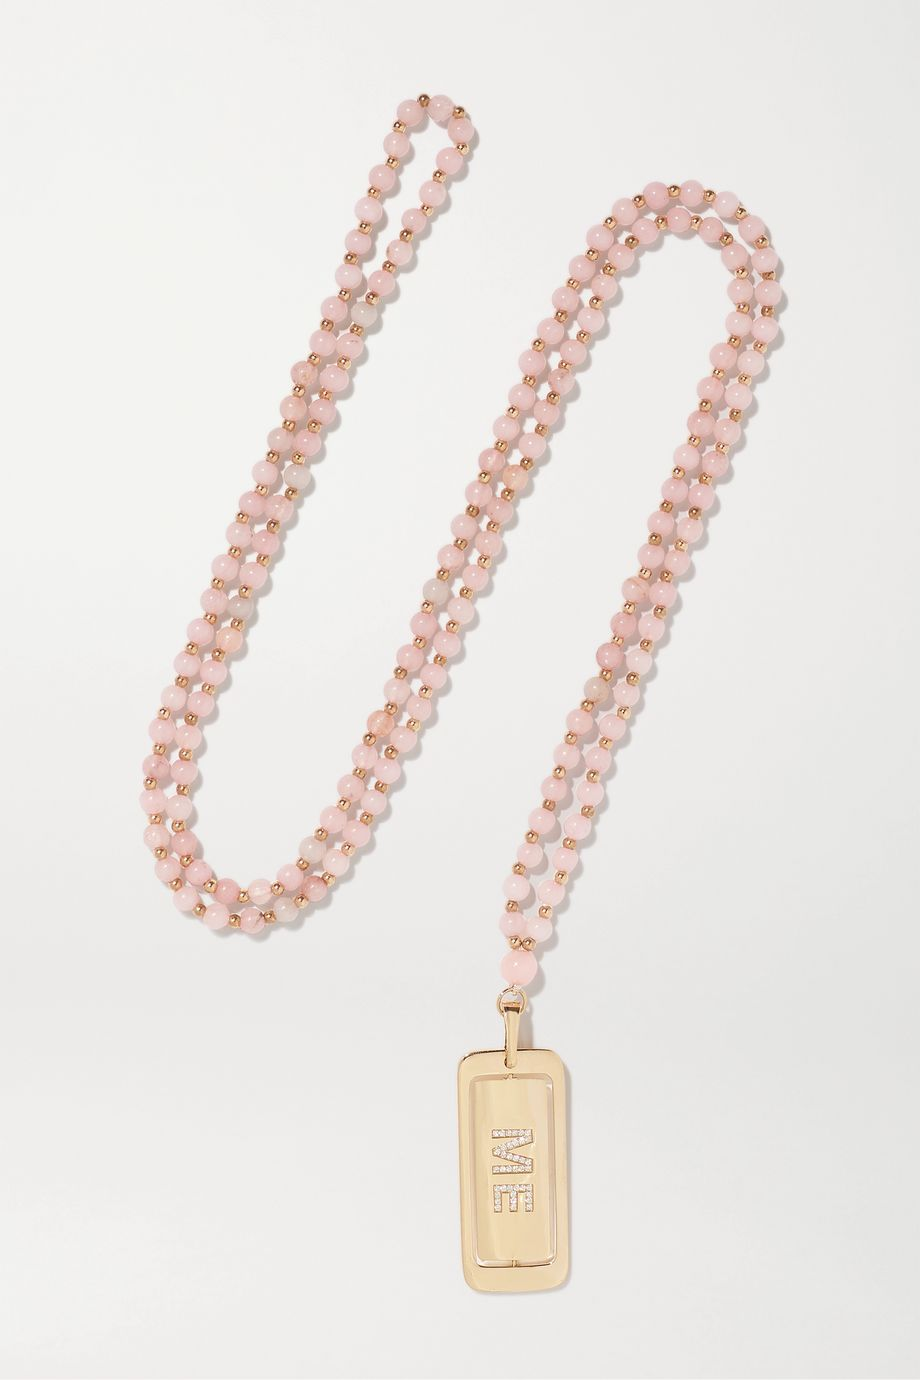 Diane Kordas Kiss Me 18-karat rose gold, diamond and kunzite necklace